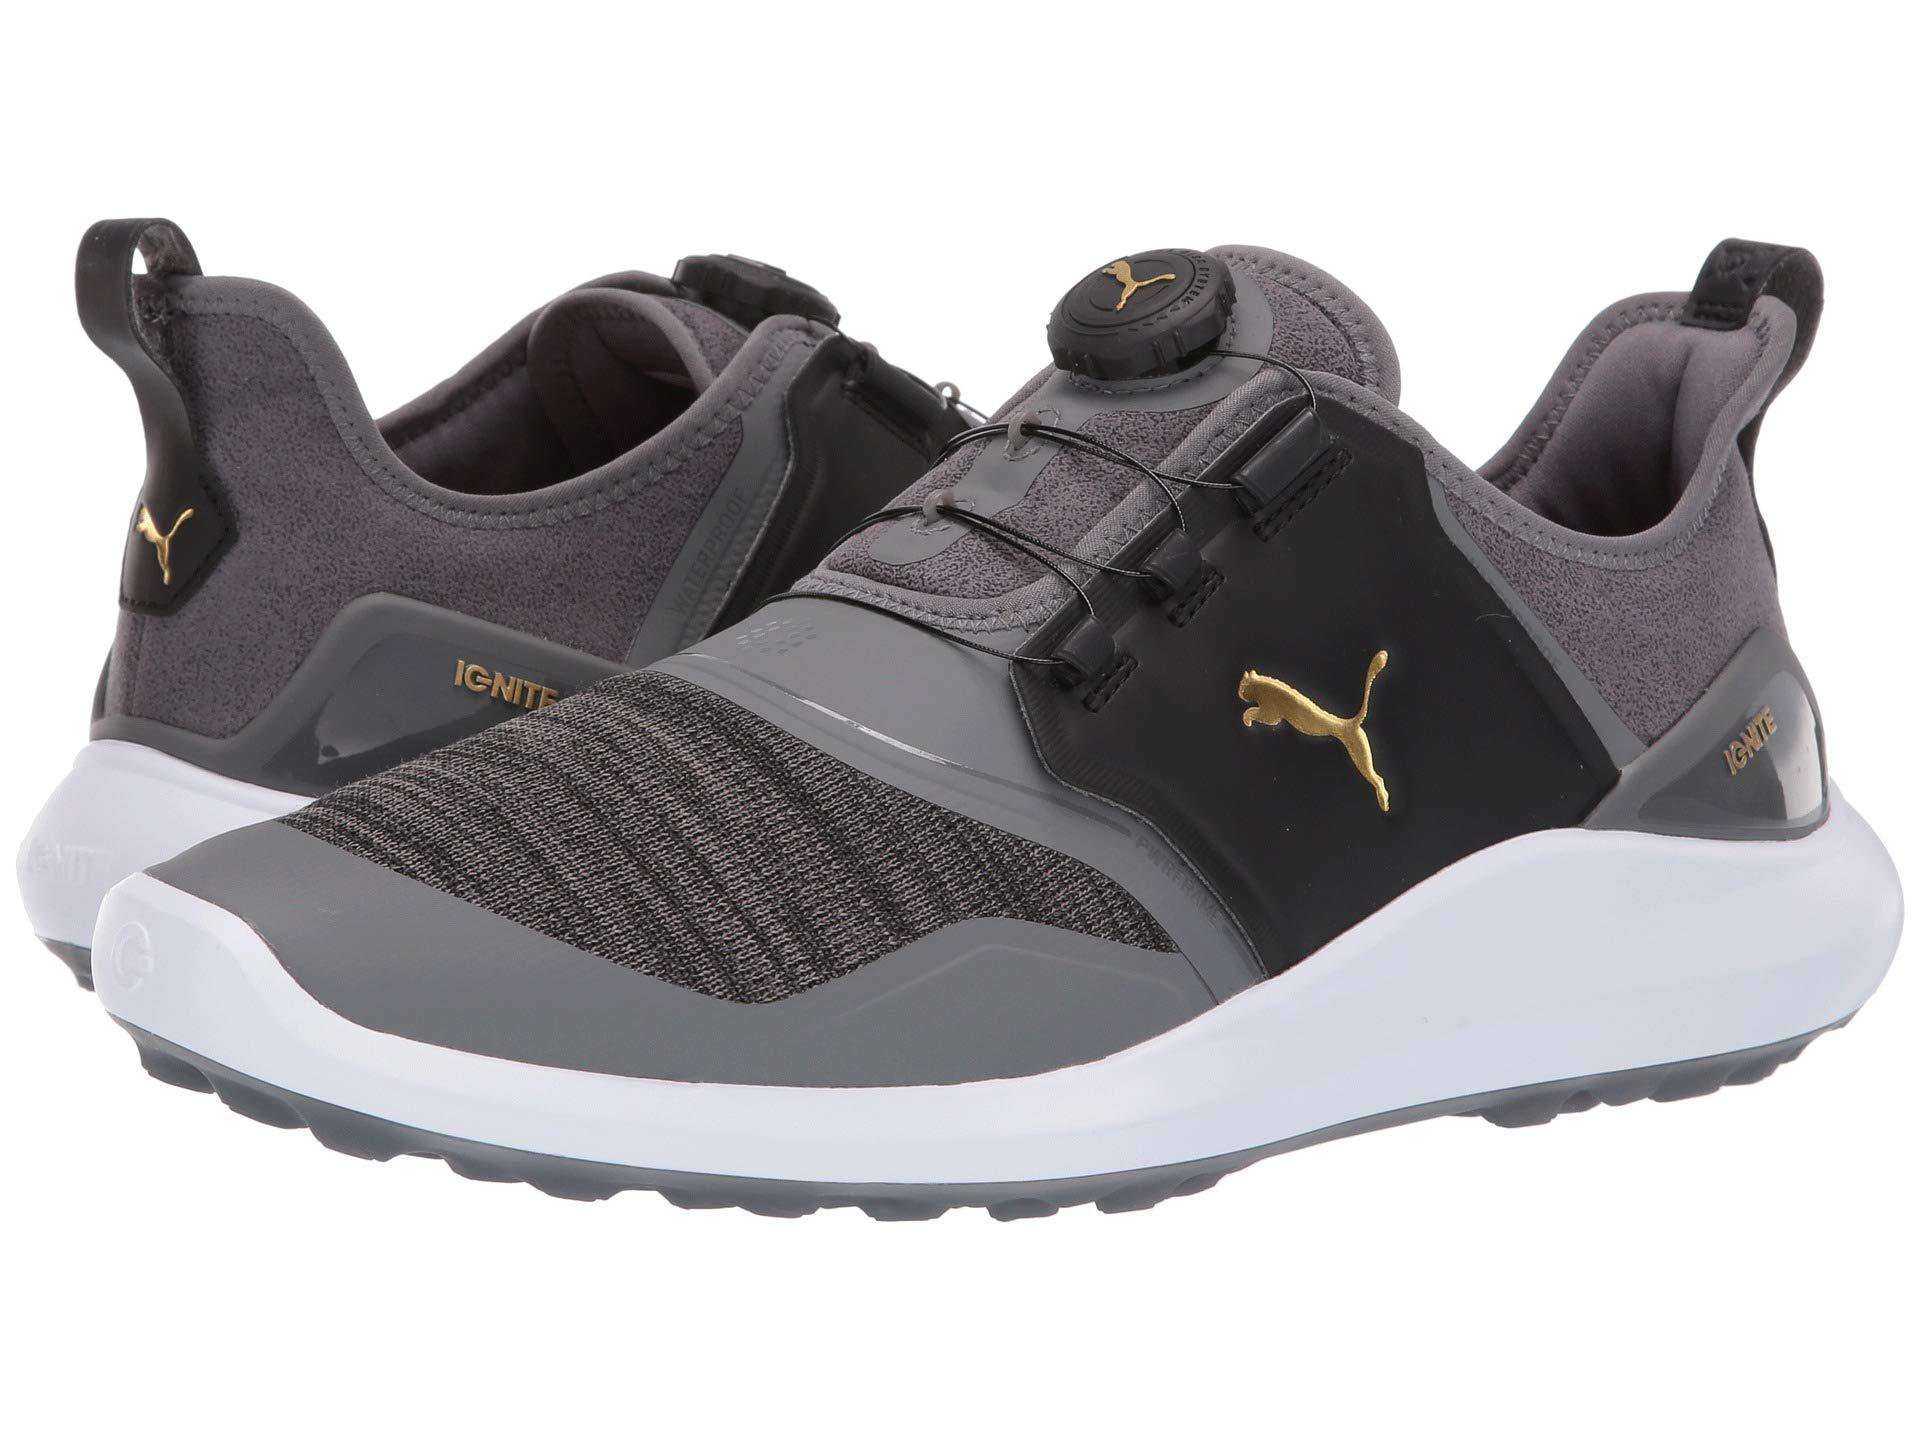 Lyst - PUMA Ignite Nxt Disc (high-rise team Gold white) Men s Golf ... b01ec0e18